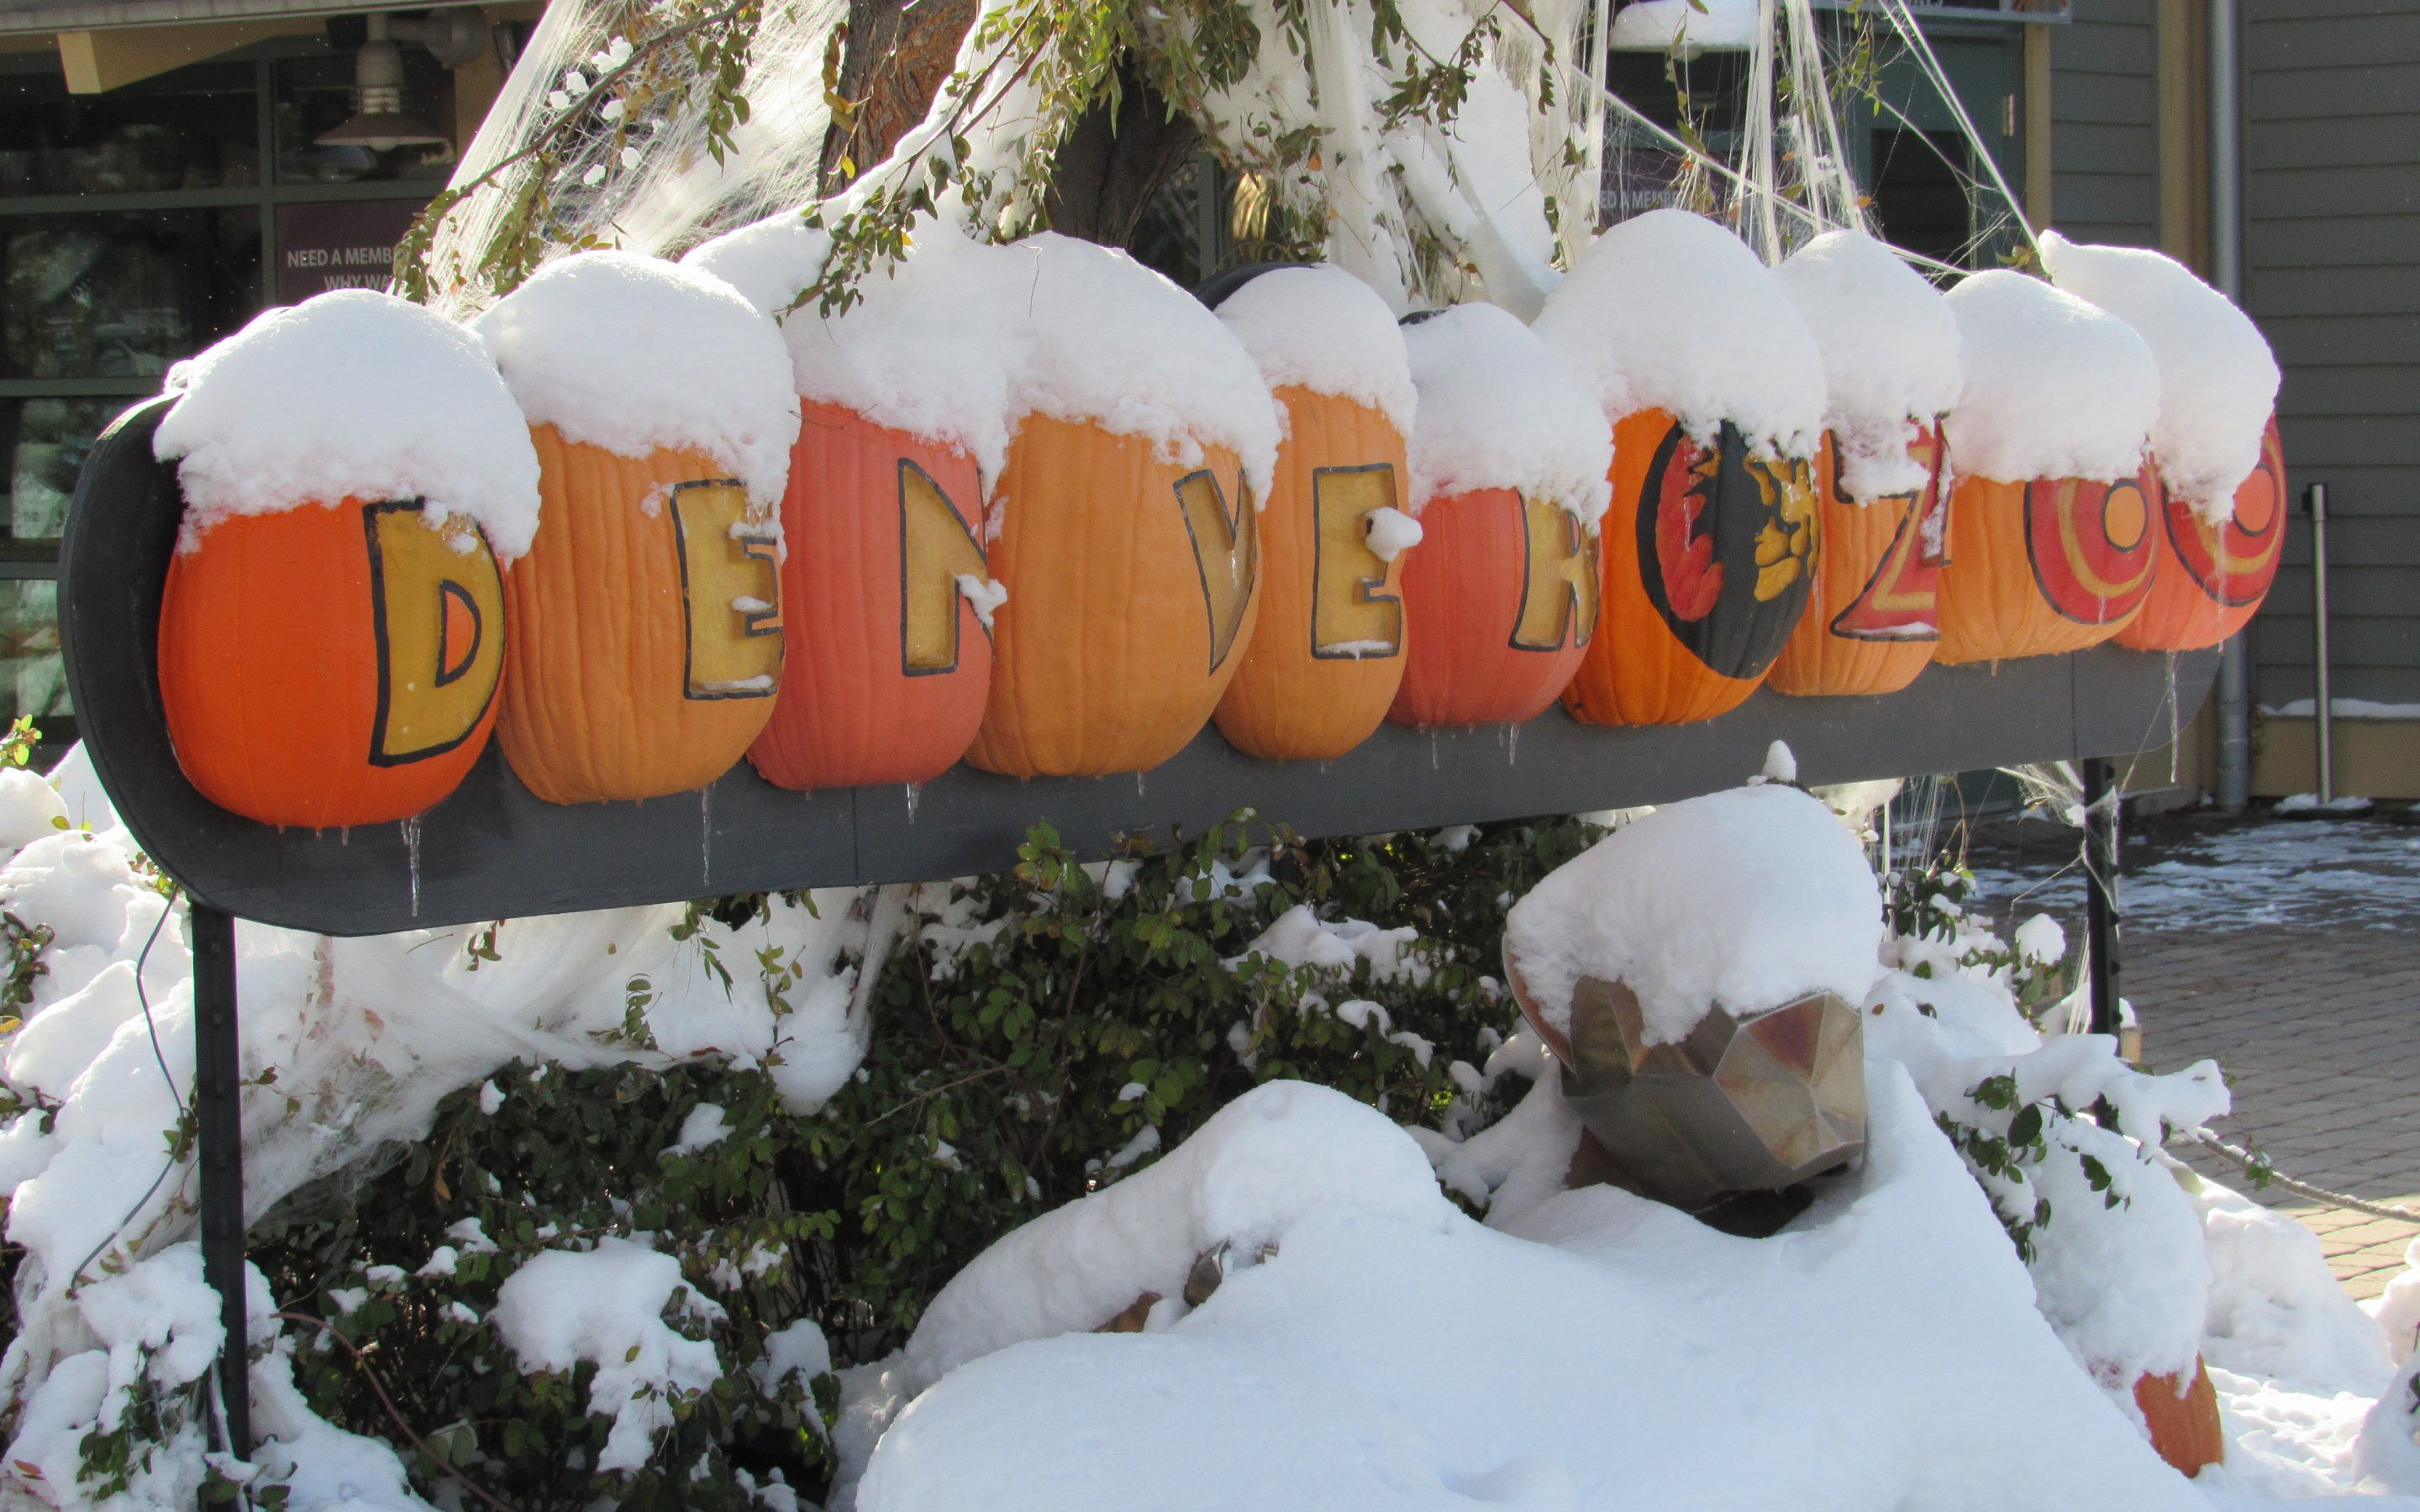 Snow-covered pumpkins welcome visitors to the Denver Zoo on Oct. 29, 2019. The Zoo is one of the agencies that has installed Gutter Bins to filter its stormwater. Credit: Jerd Smith